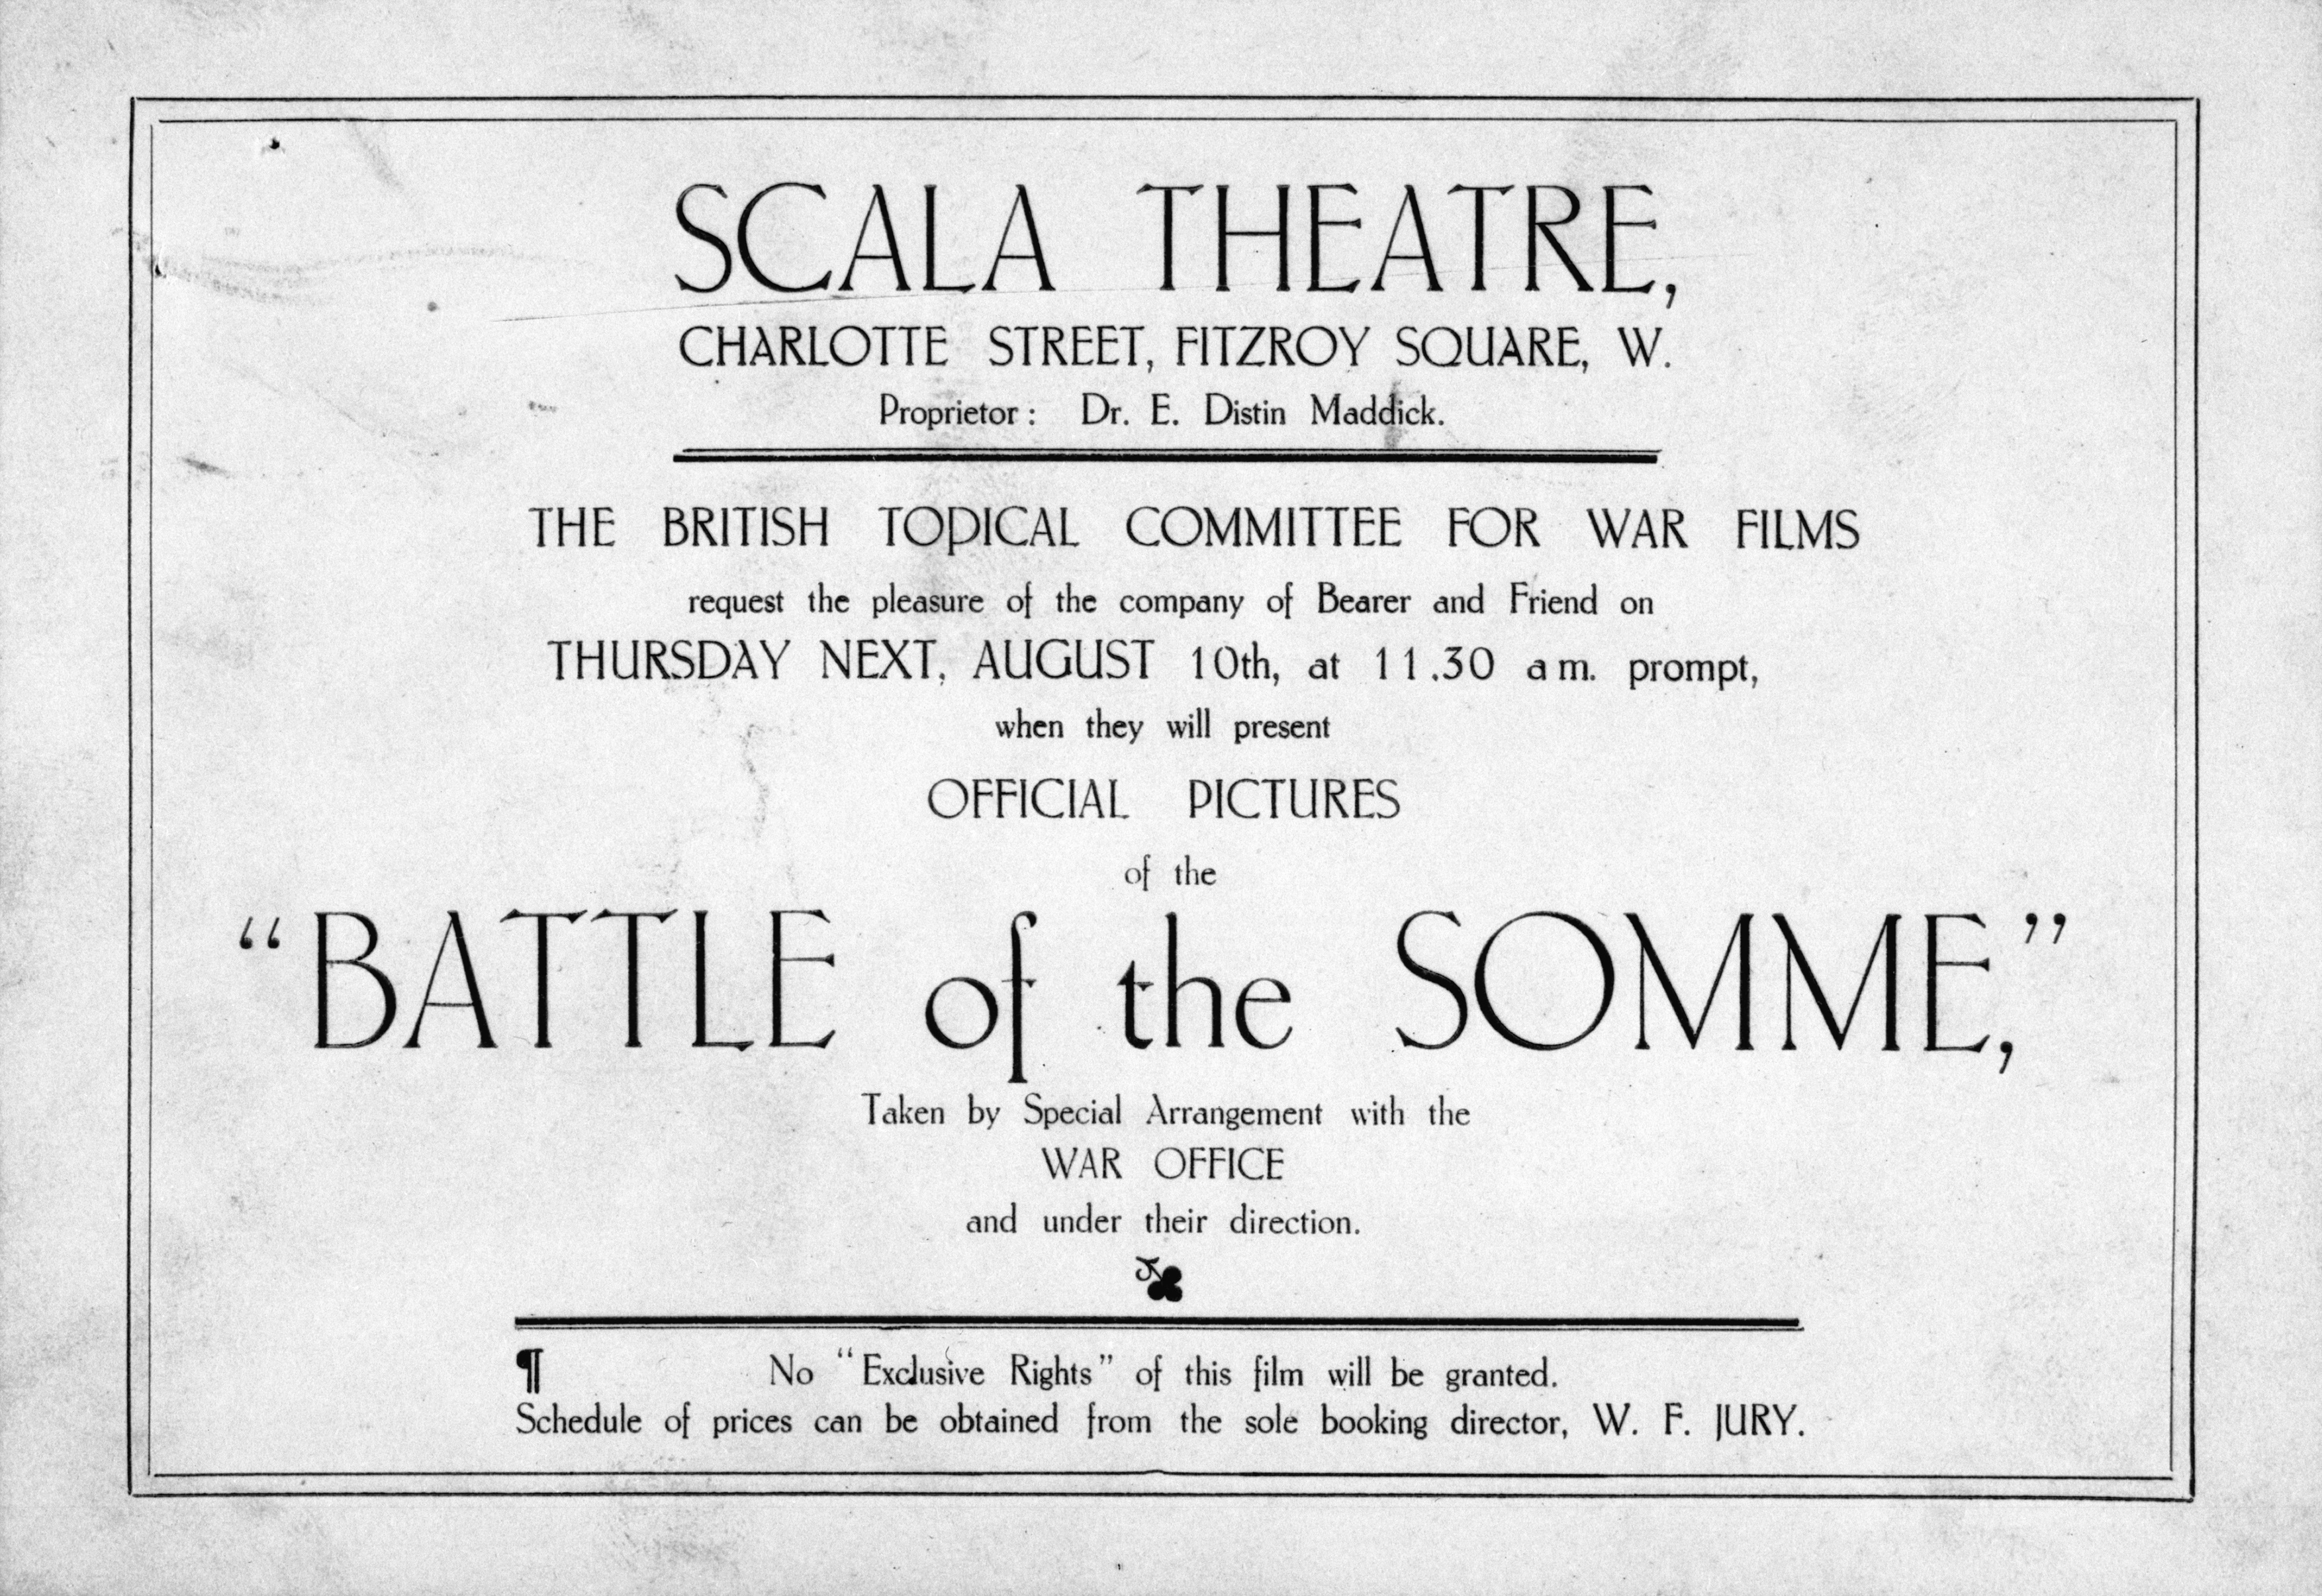 The Battle of the Somme (1916) original screening invitation card